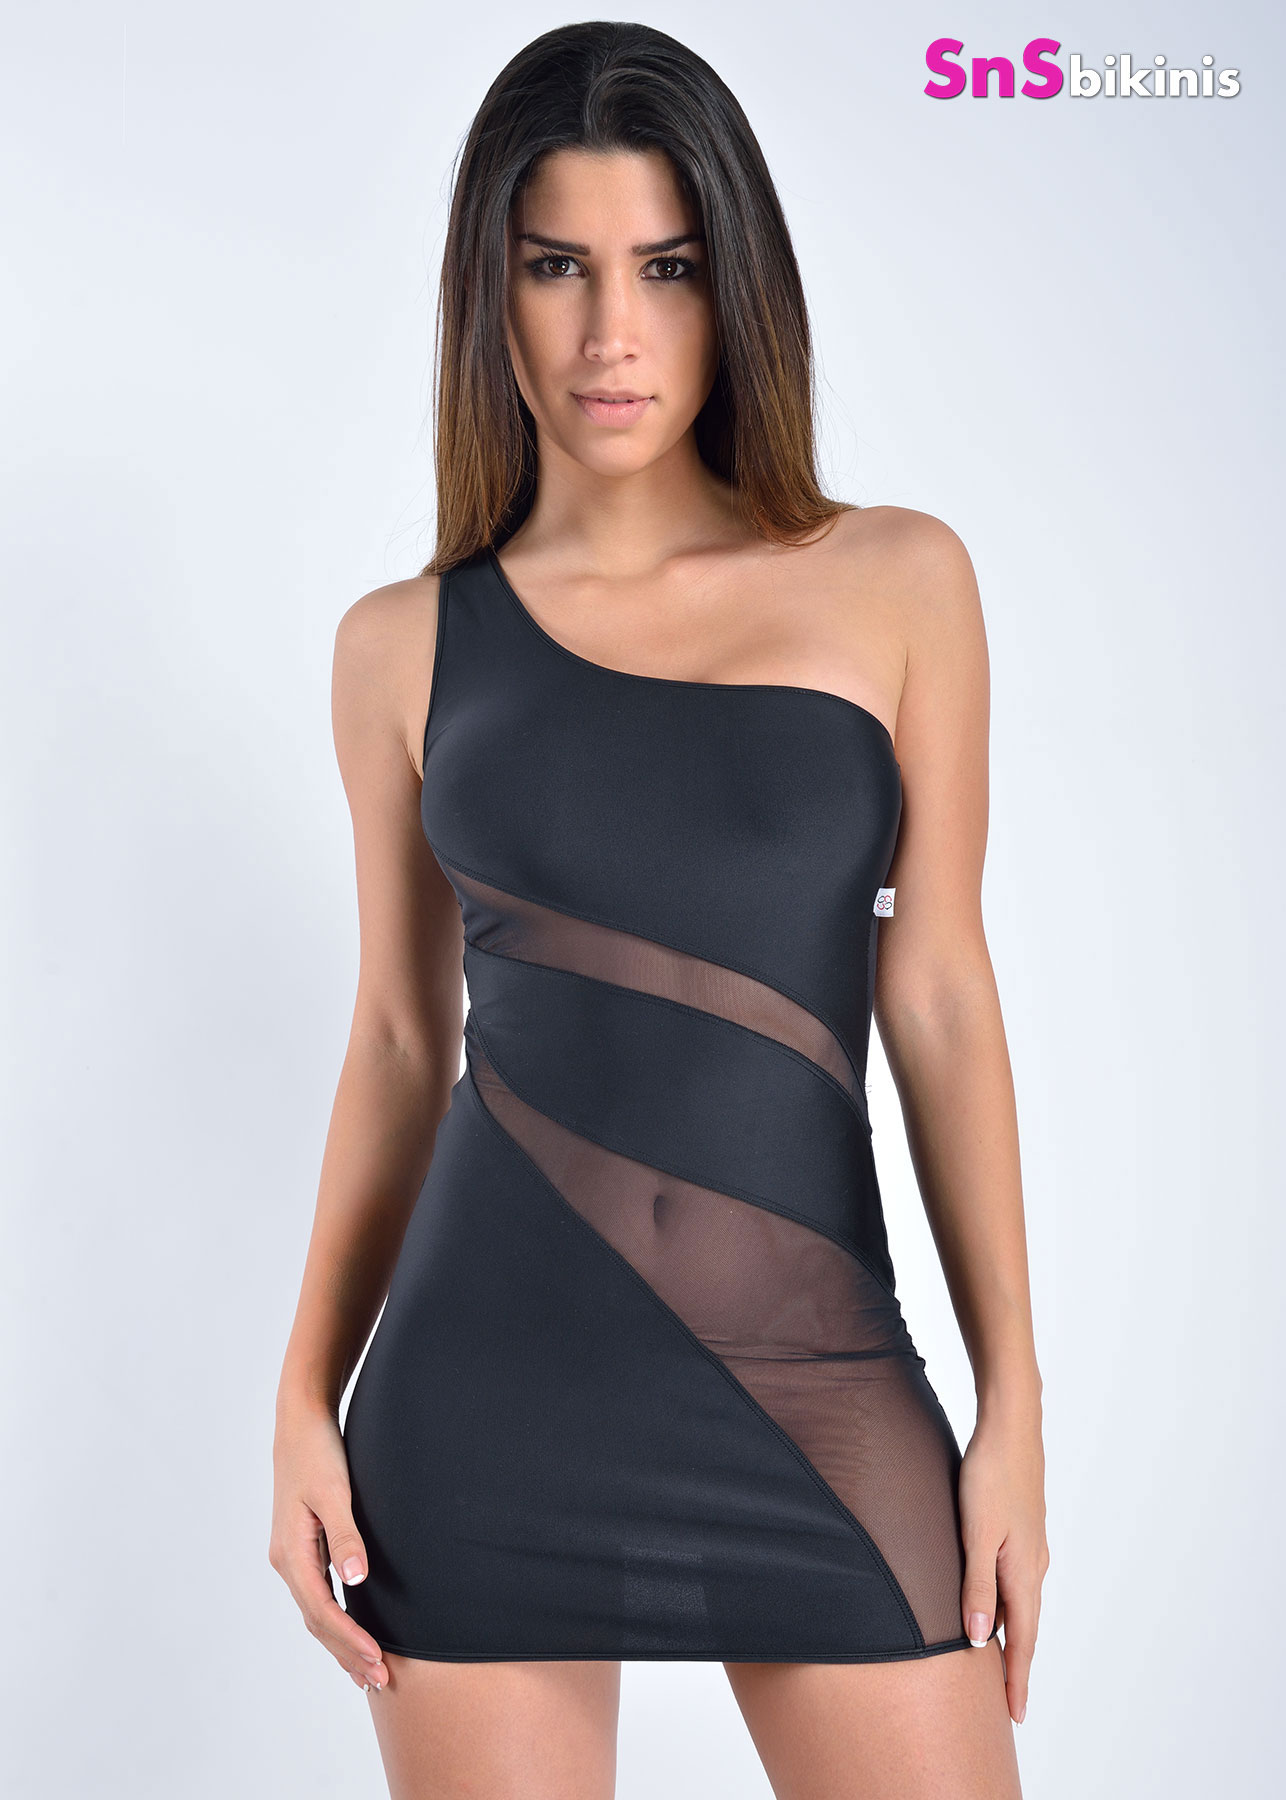 HEAVEN Seductive Sheer Translucent Mini Dress